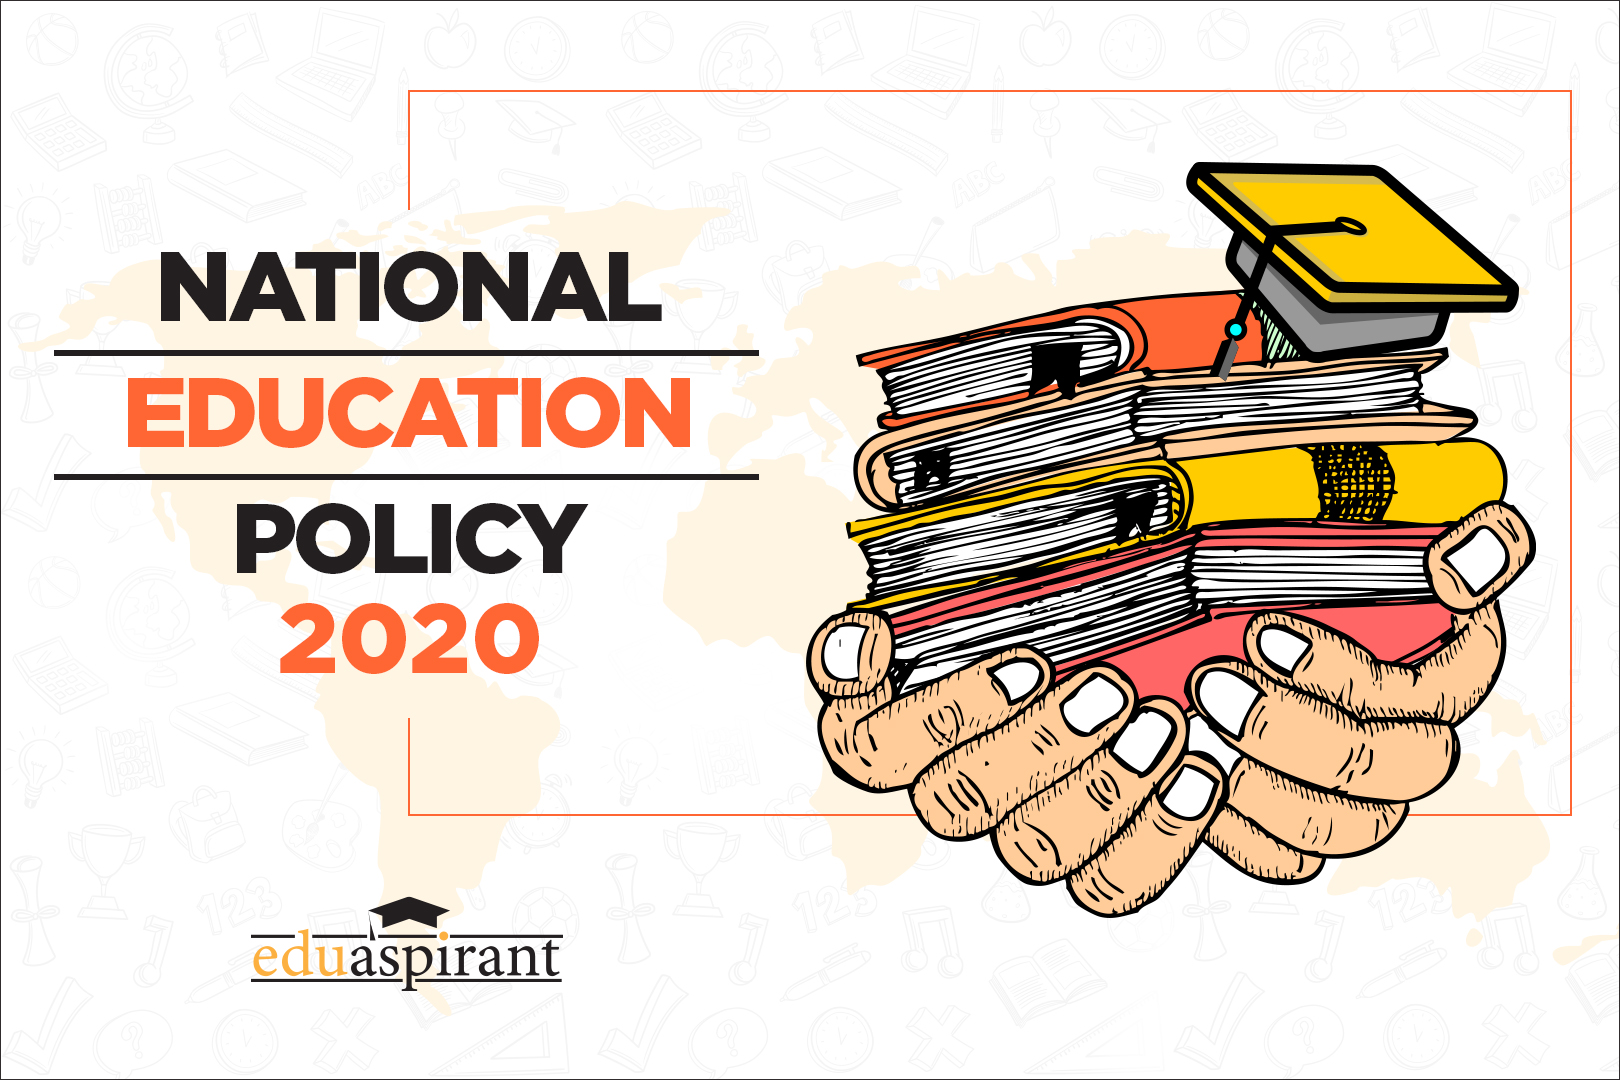 National Education Policy 2020: The Voice of India's youth!